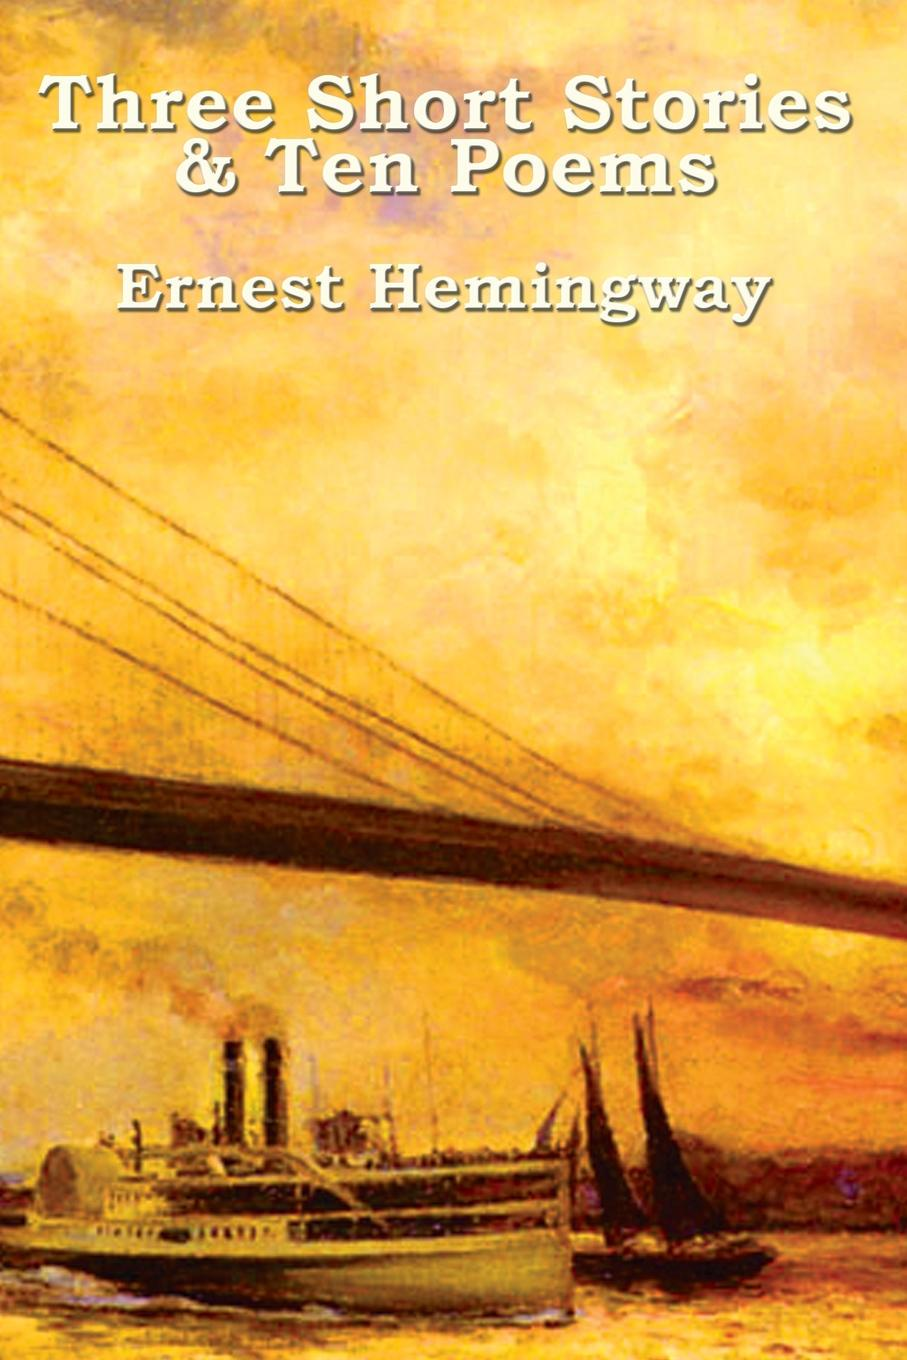 Ernest Hemingway Three Short Stories & Ten Poems hemingway ernest men without woman hemingway мужчины без женщин